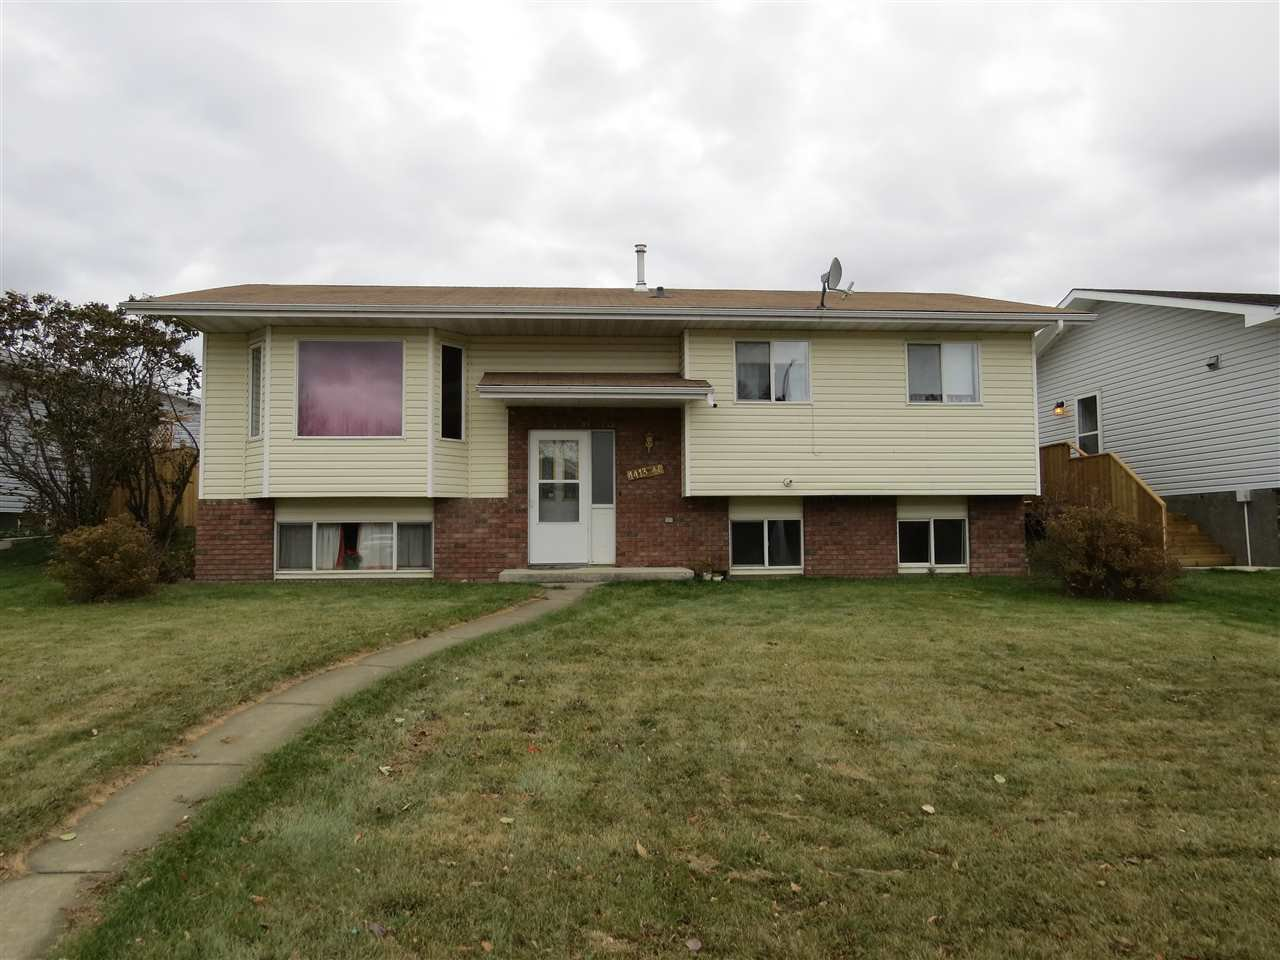 Main Photo: 4413 48 Ave: Onoway House for sale : MLS®# E4219653